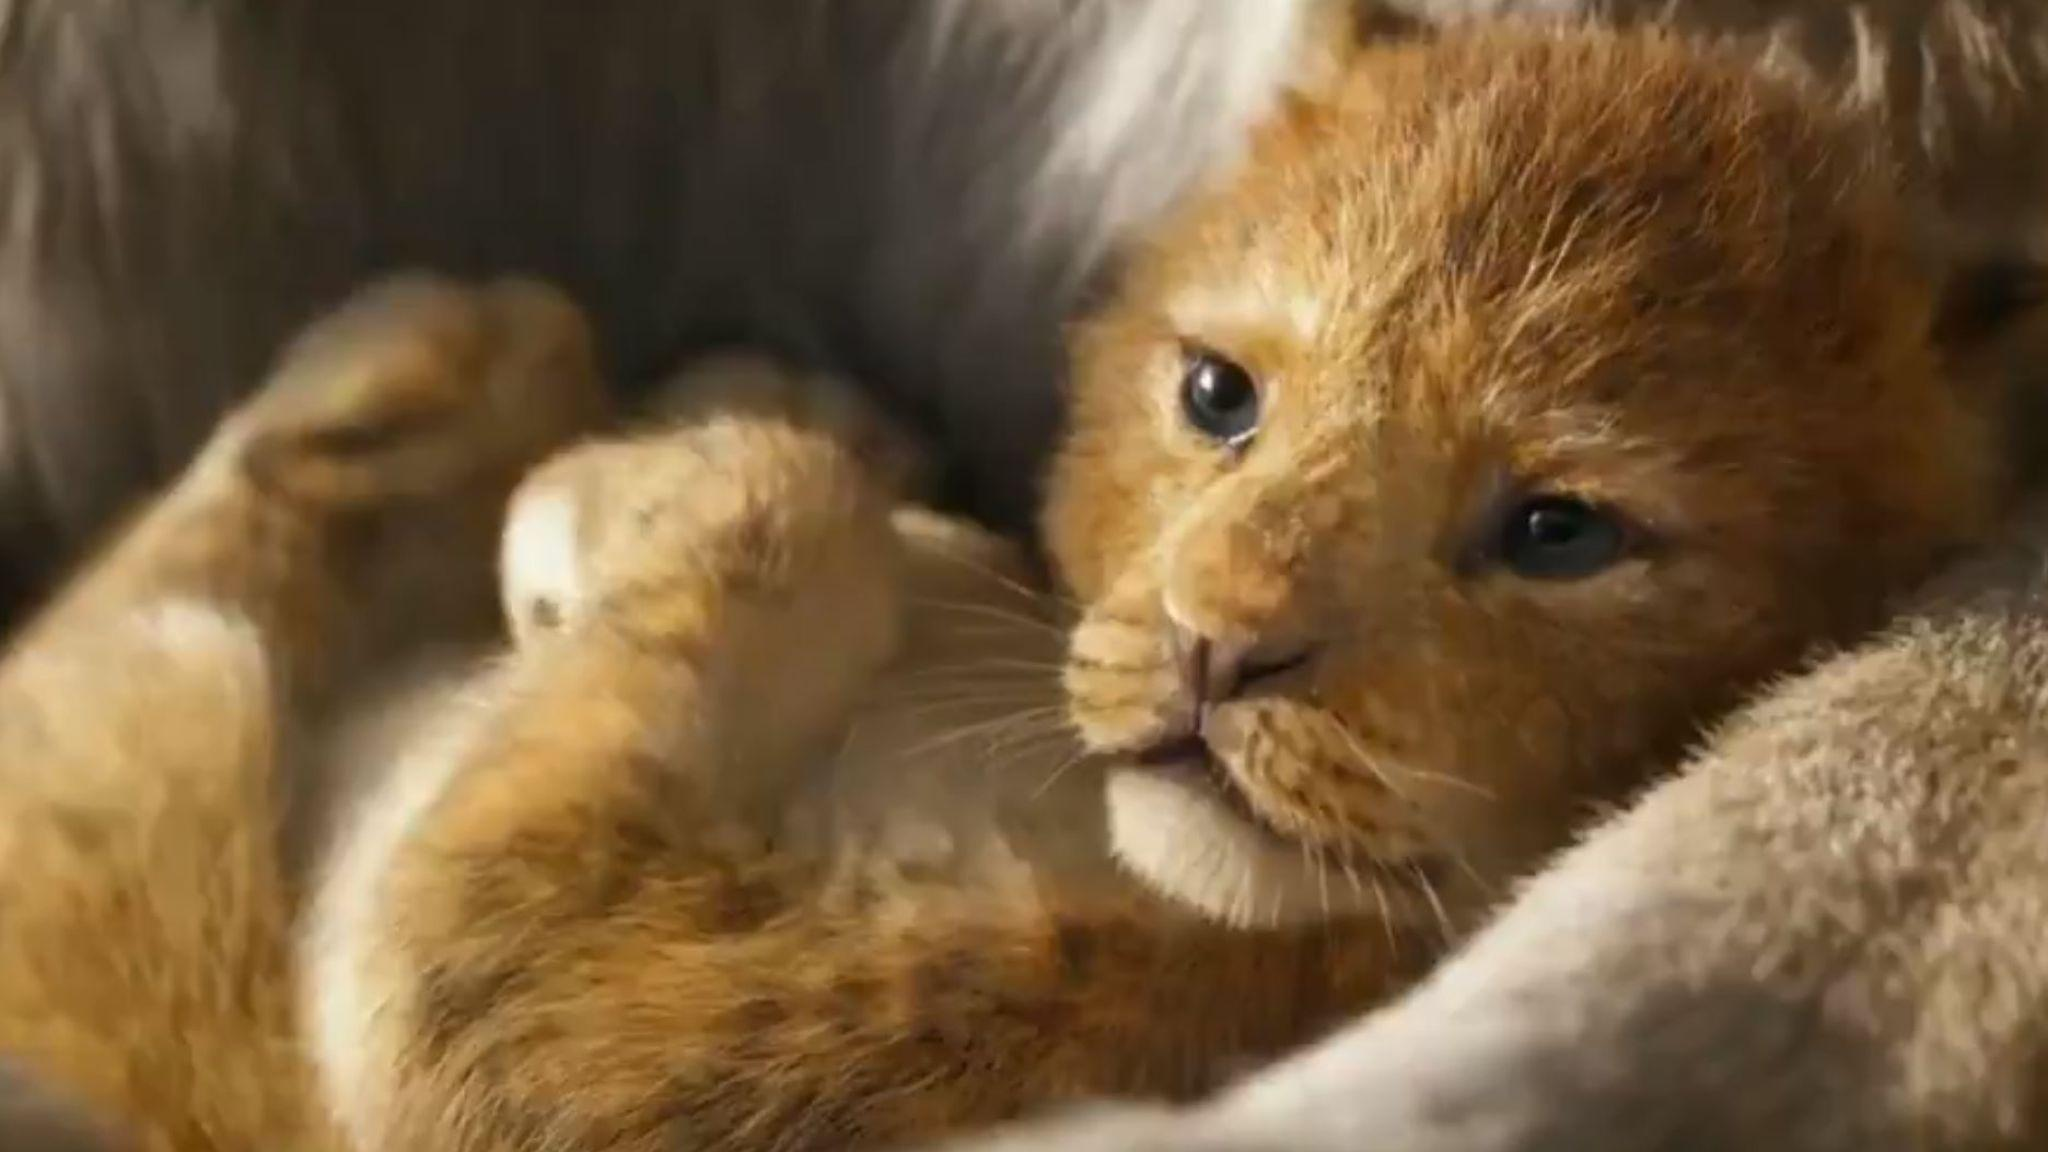 The Lion King: Watch first trailer for remake starring Beyonce and